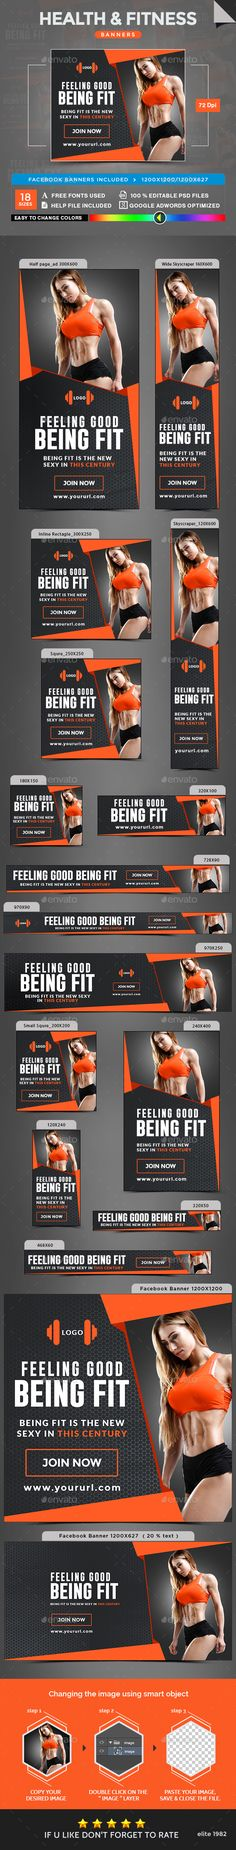 Health & Fitness Banner Ads Design Template - Banners & Ads Web Elements Design Template PSD. Download here: https://graphicriver.net/item/health-fitness-banners/18918227?ref=yinkira